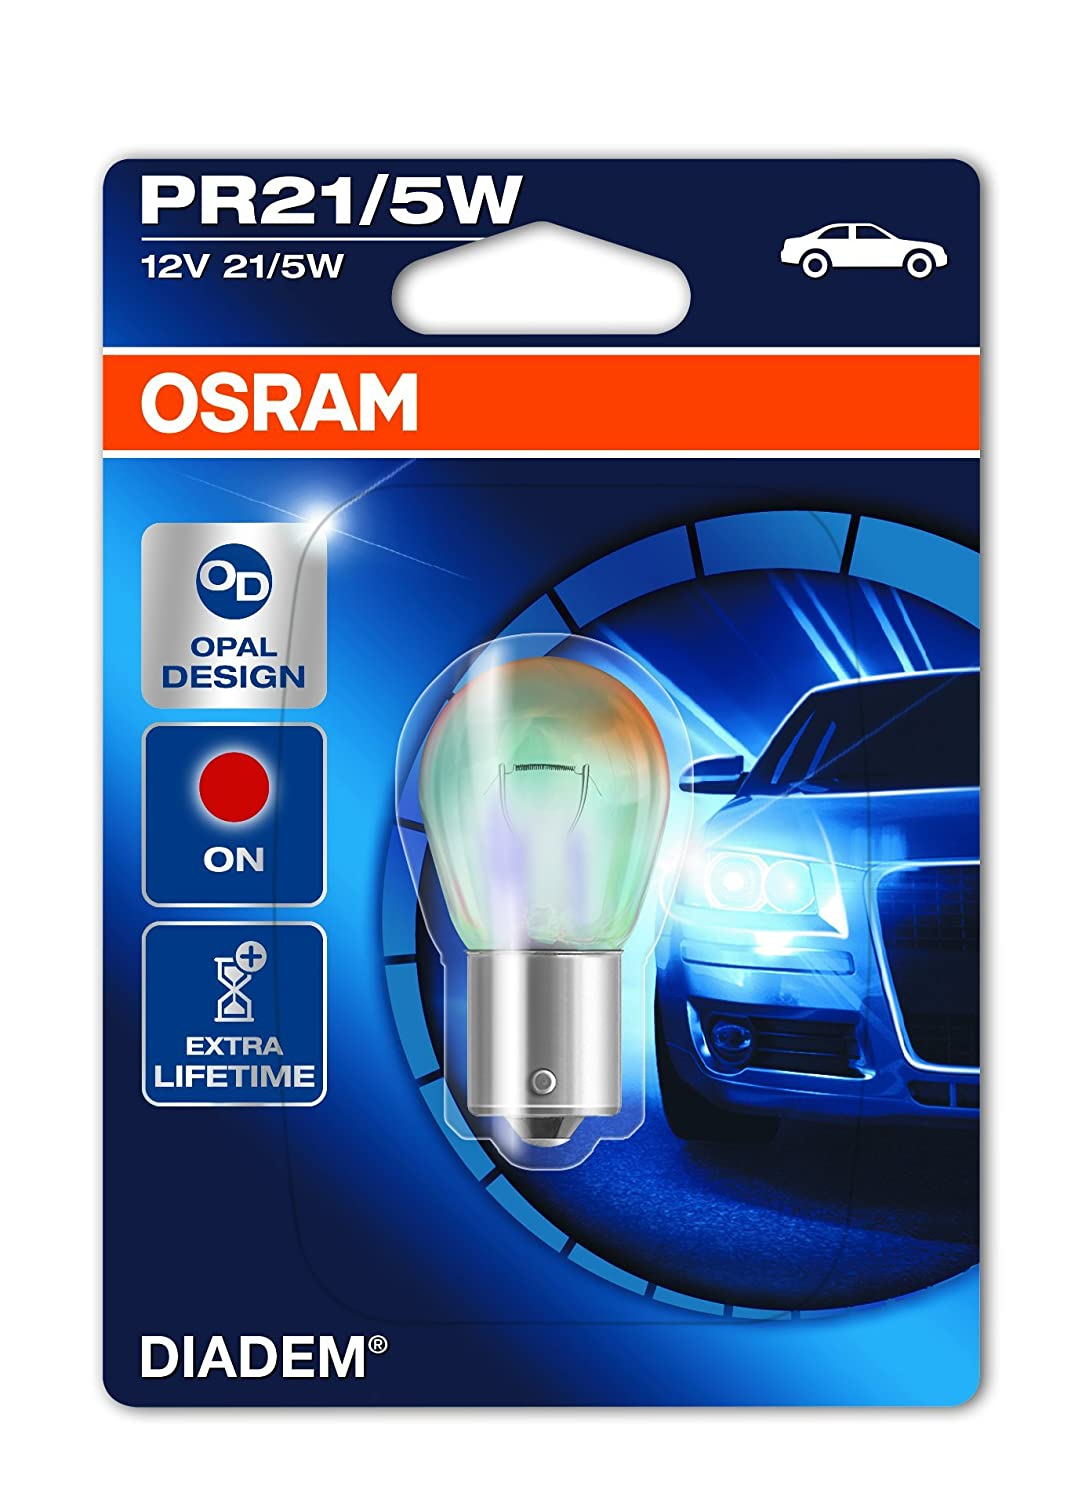 OSRAM DIADEM CHROME Indicator light WY5W 2827DC-02B nearly invisible when turned off in double blister